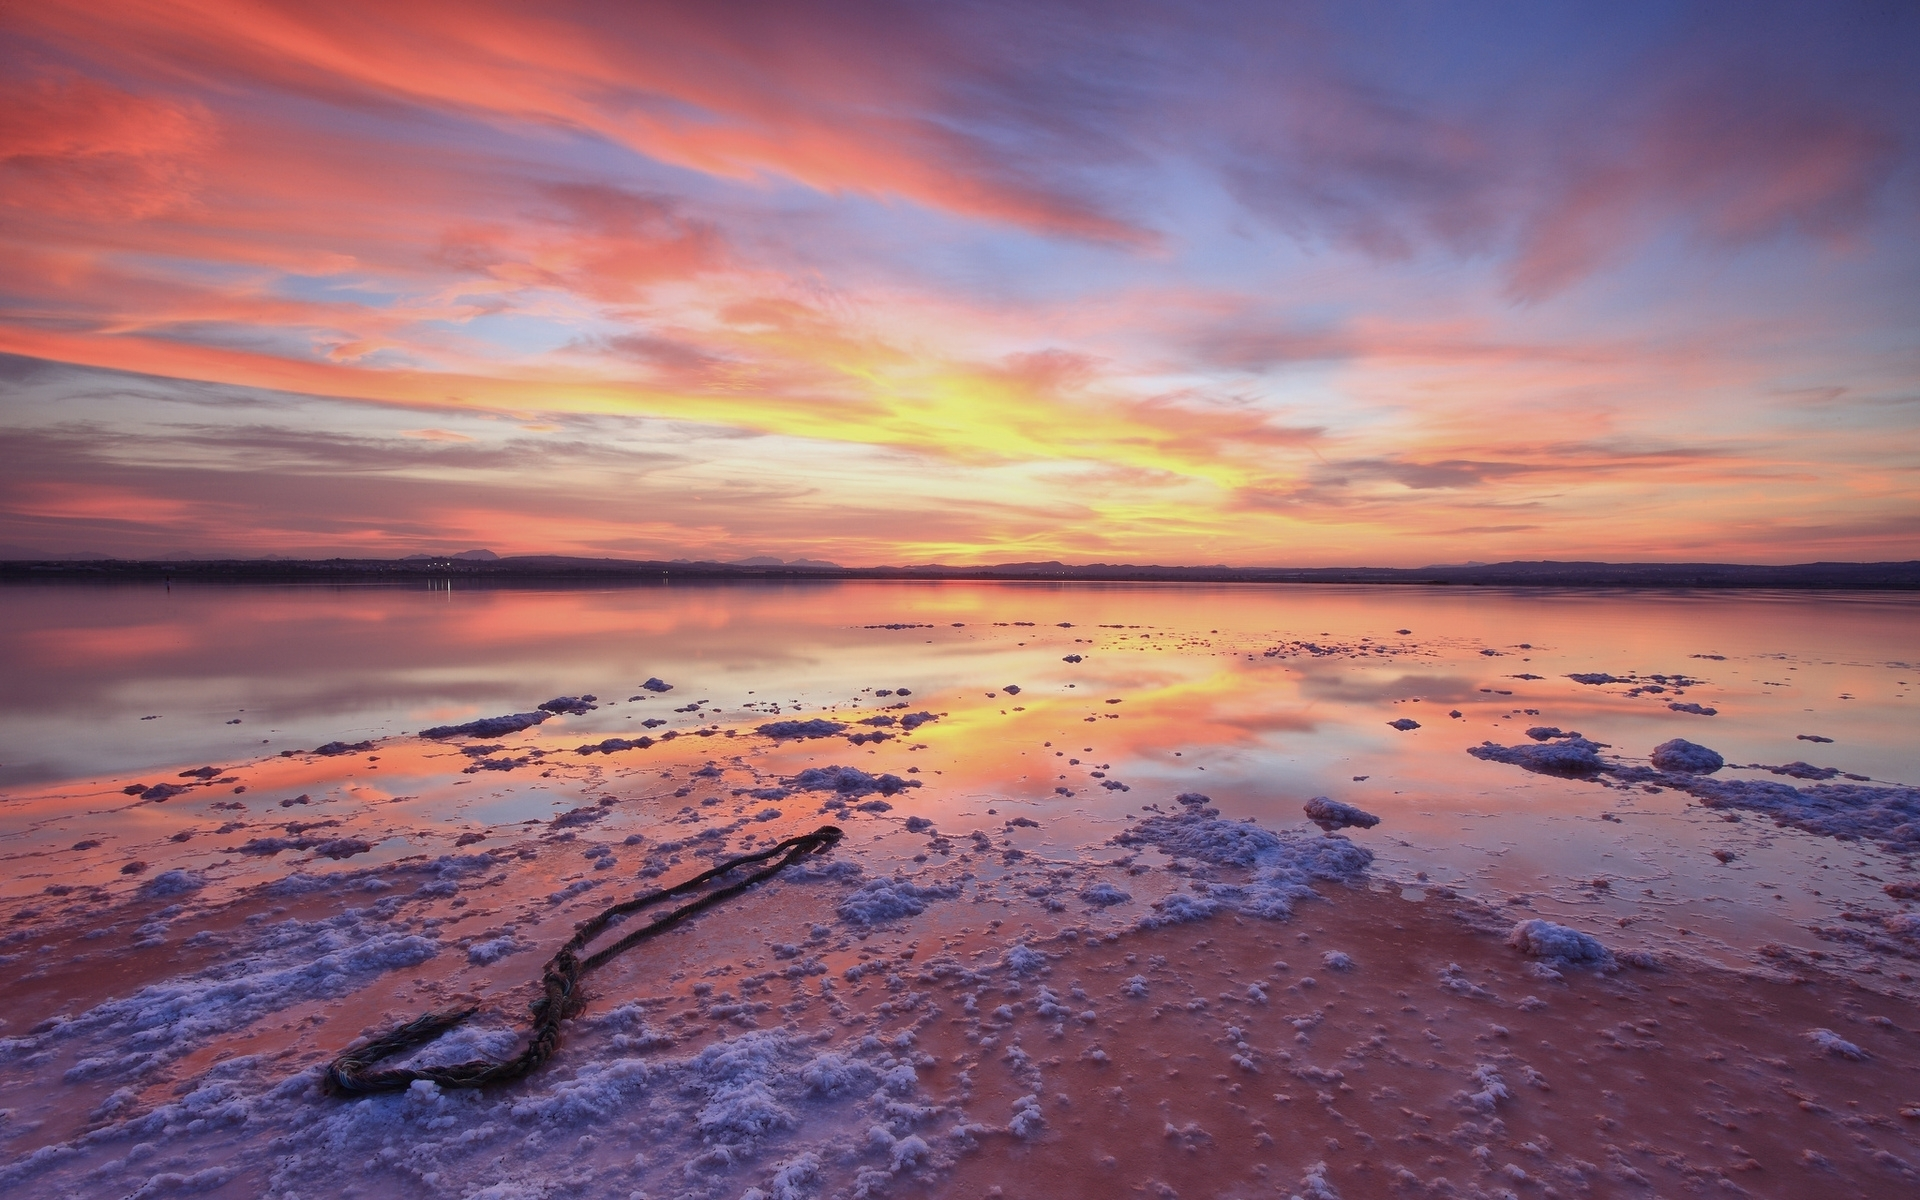 Animated Wallpaper For Tablet Ocean Coast Colorful Sky Wallpapers Ocean Coast Colorful